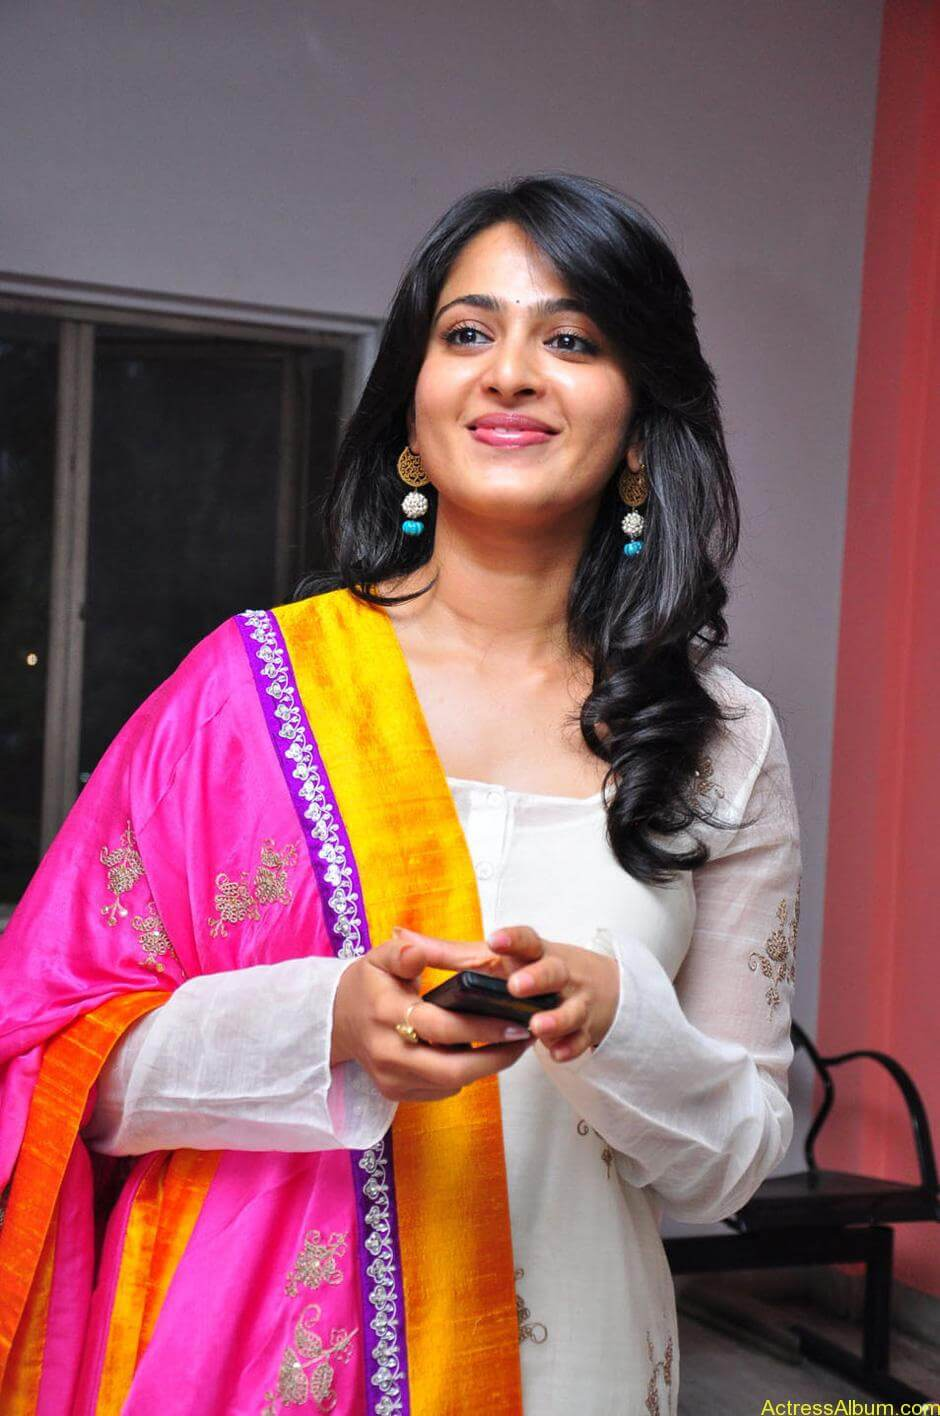 Anushka-Shetty-05-23-2011-Stills-016